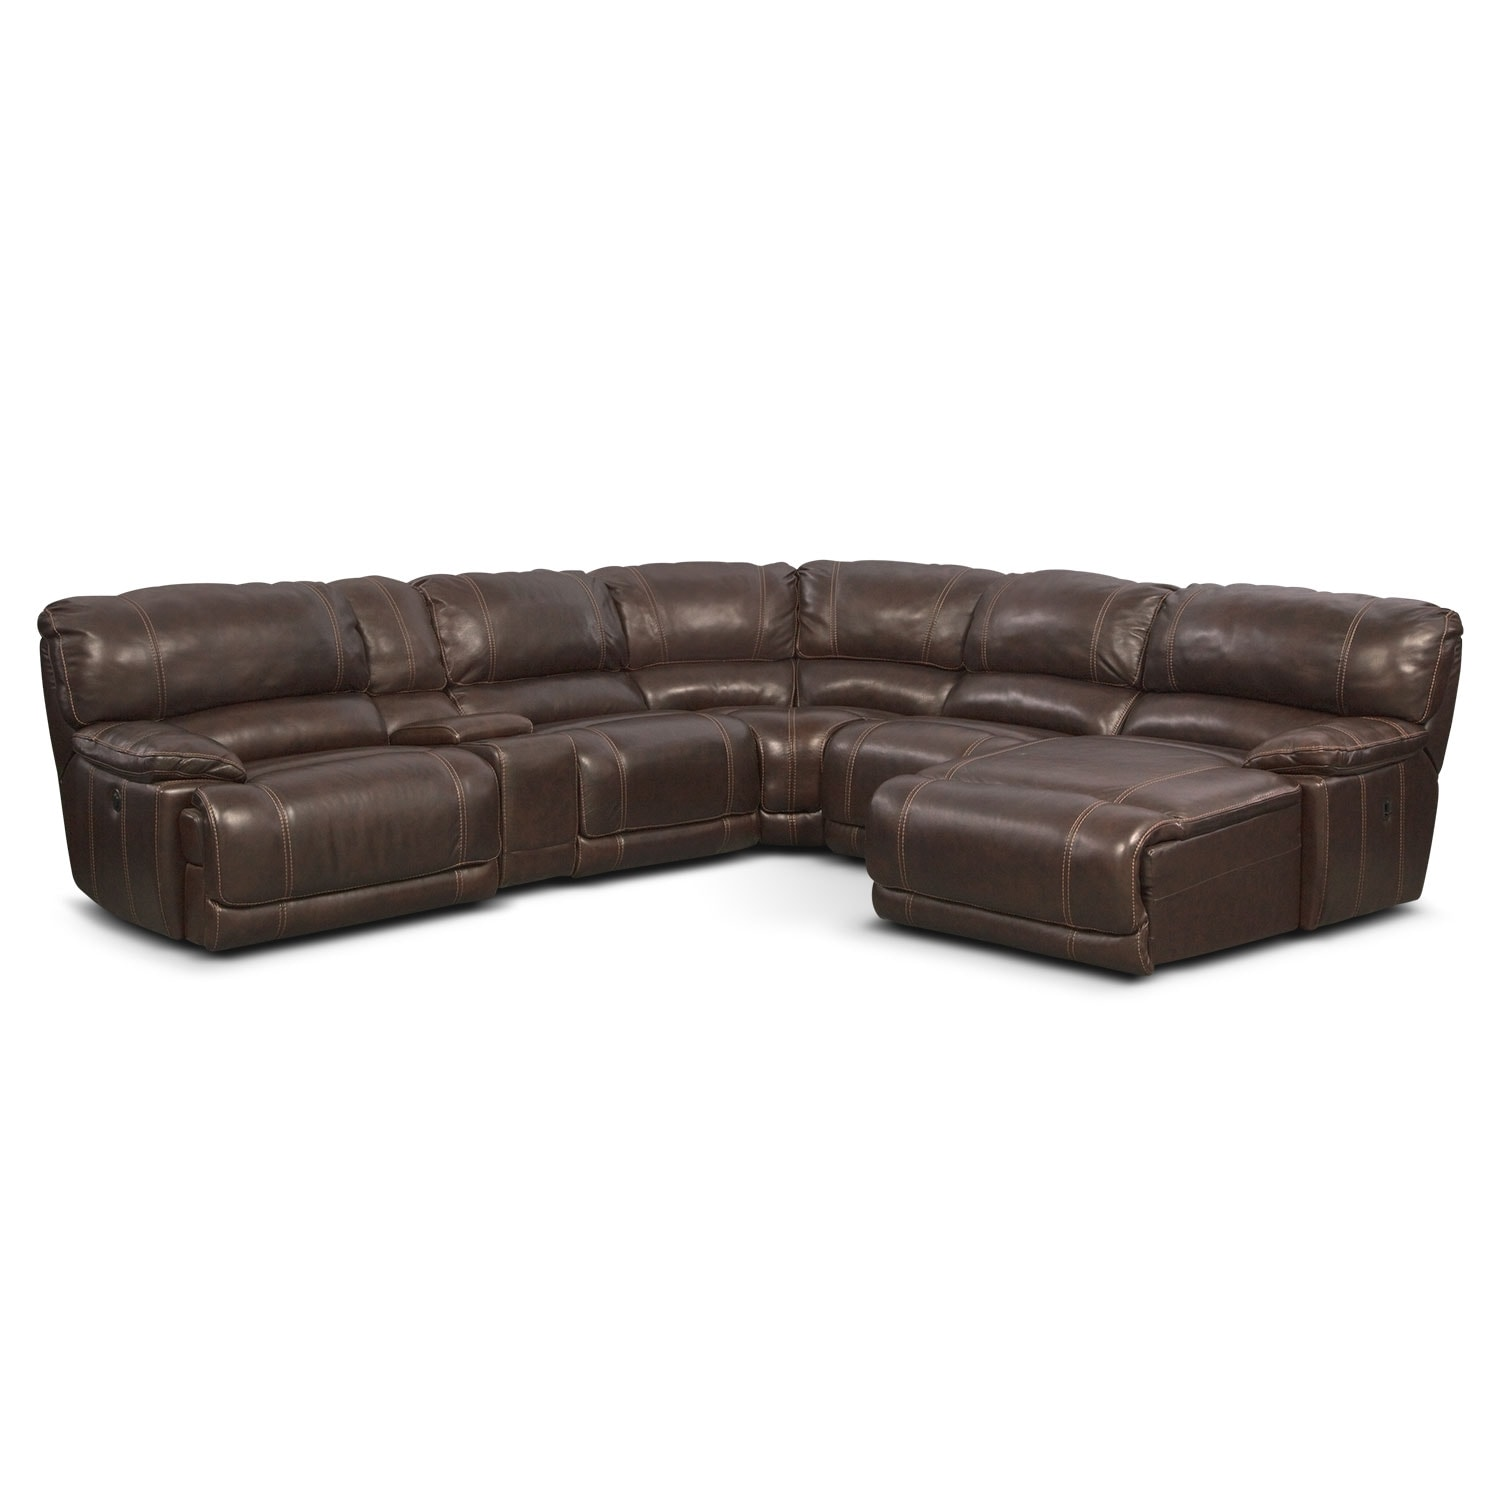 Living Room Furniture - Clinton Brown 6 Pc. Power Reclining Sectional